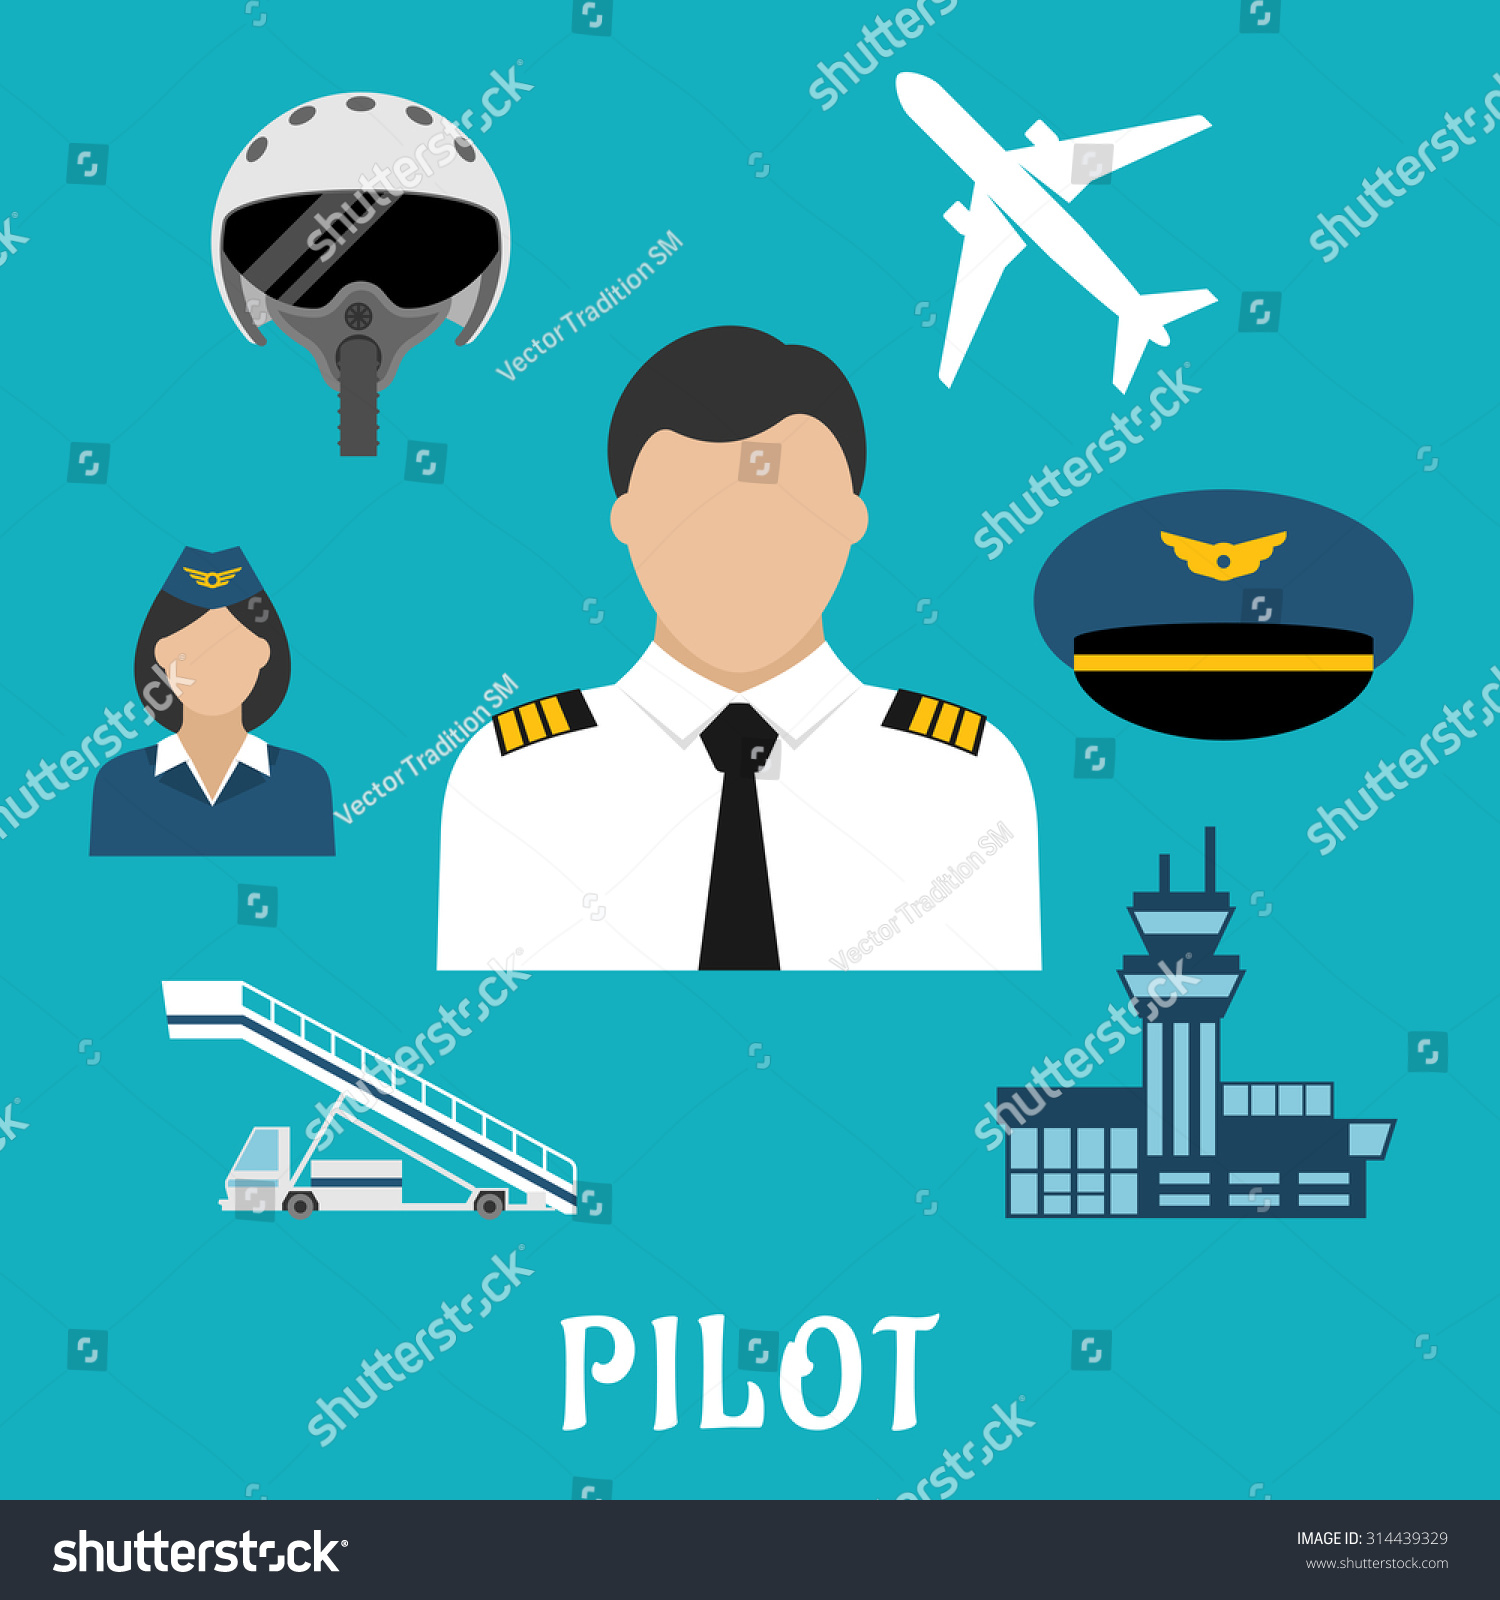 how to become an airline pilot without the military